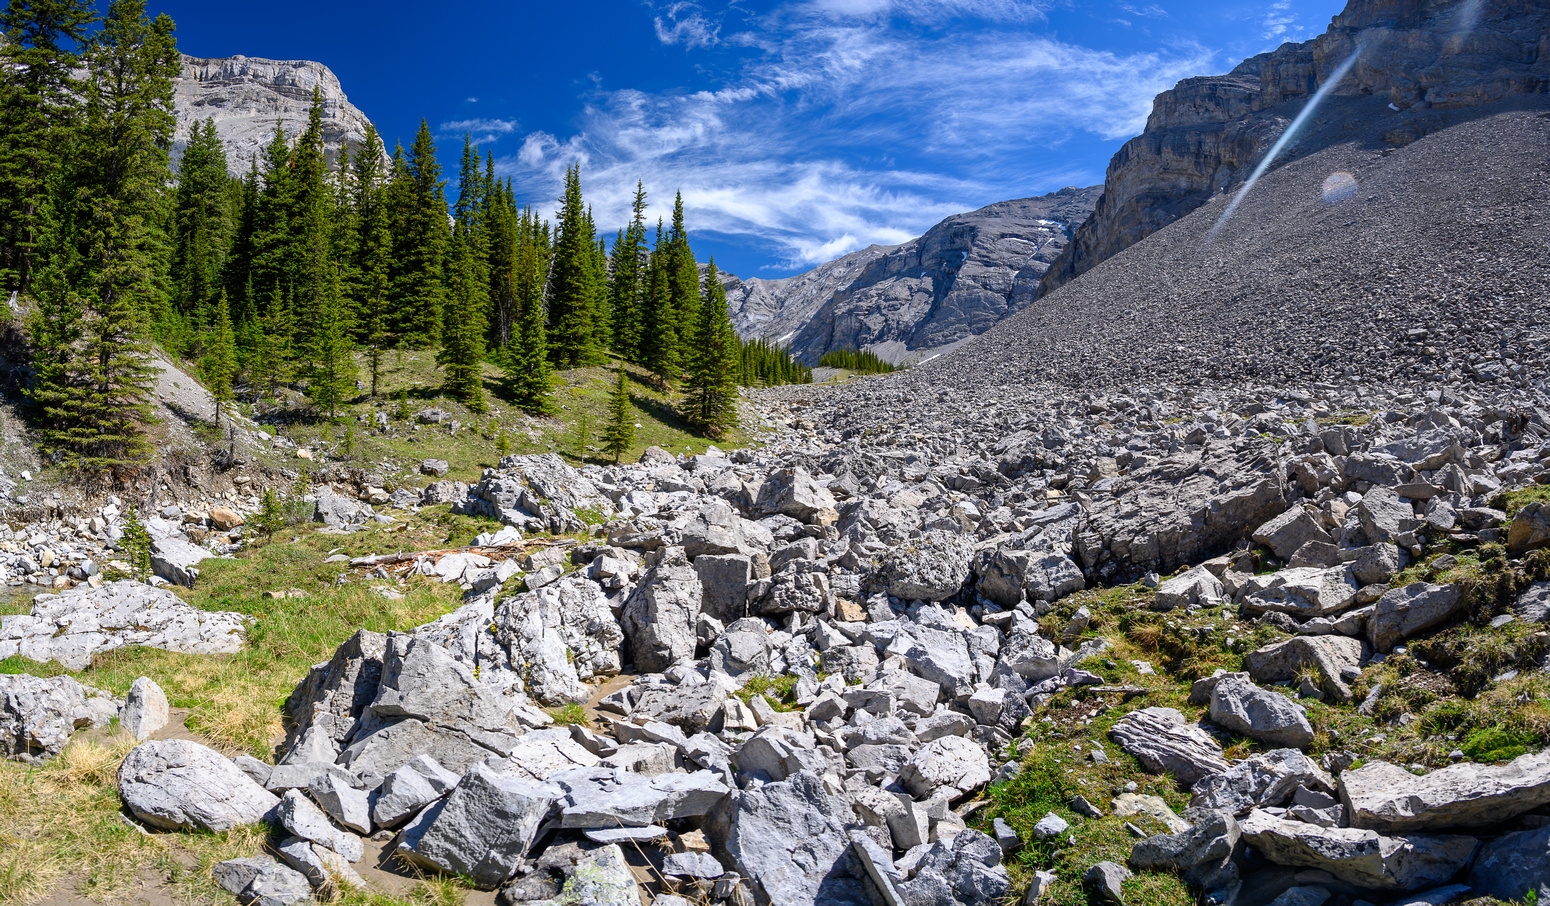 Lovely alpine meadows in the valley south of Psychic Peak.